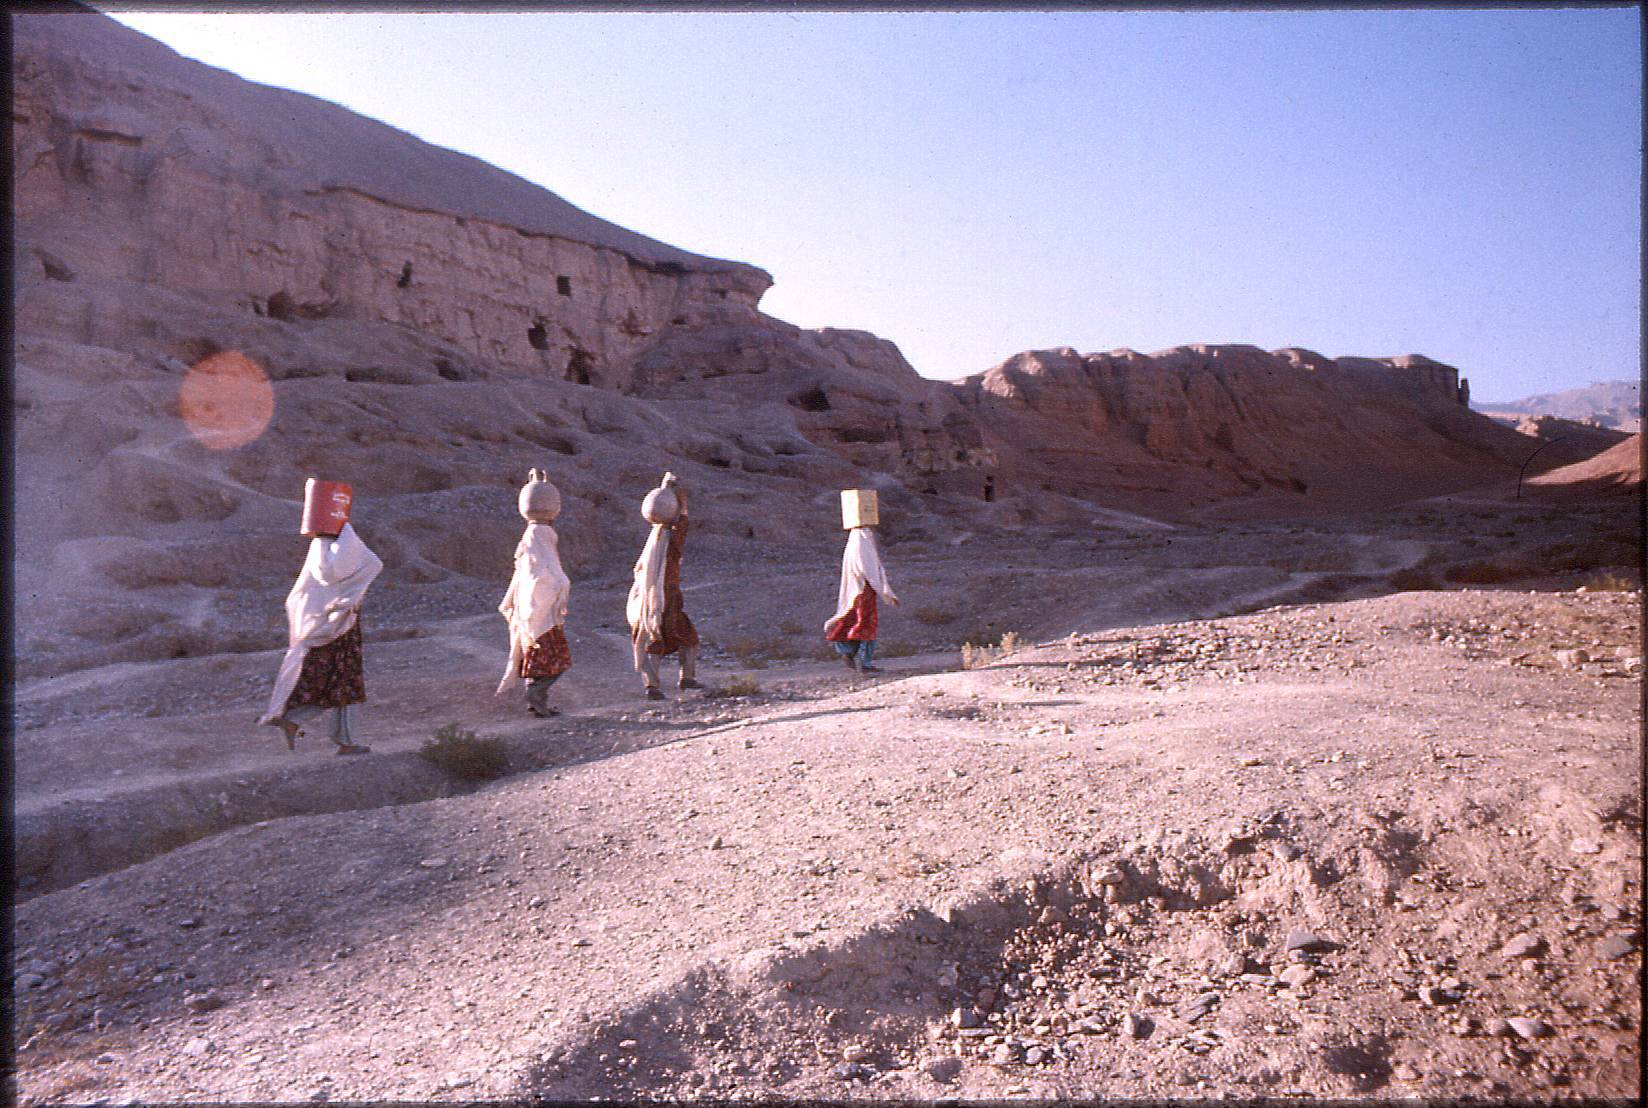 https://upload.wikimedia.org/wikipedia/commons/6/6a/Women_carrying_water_in_Afghanistan,_near_Bamiyan,_1976.jpg